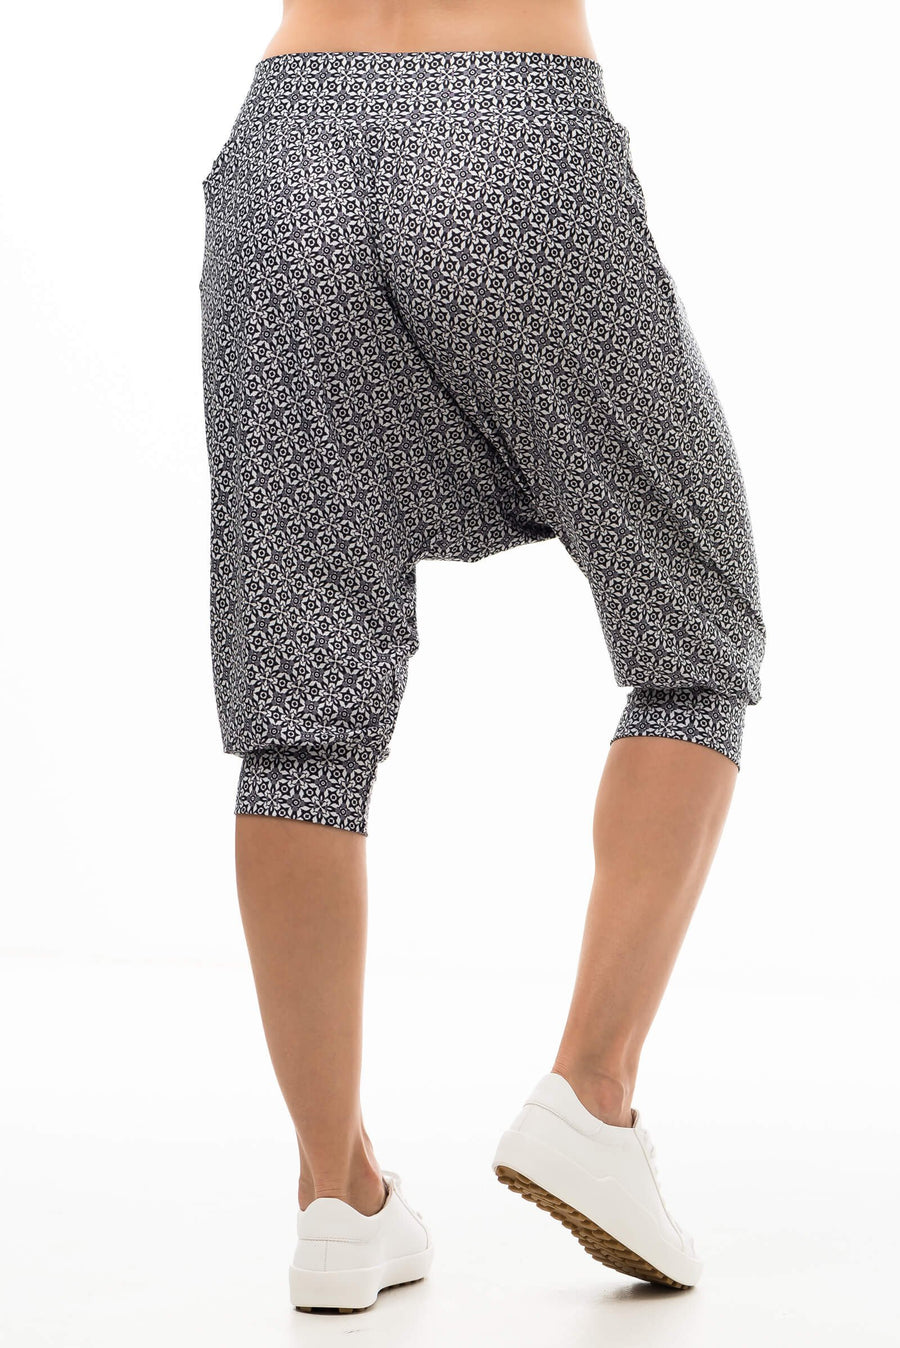 Drop Crotch Pants Palermo Onelike Athleisure